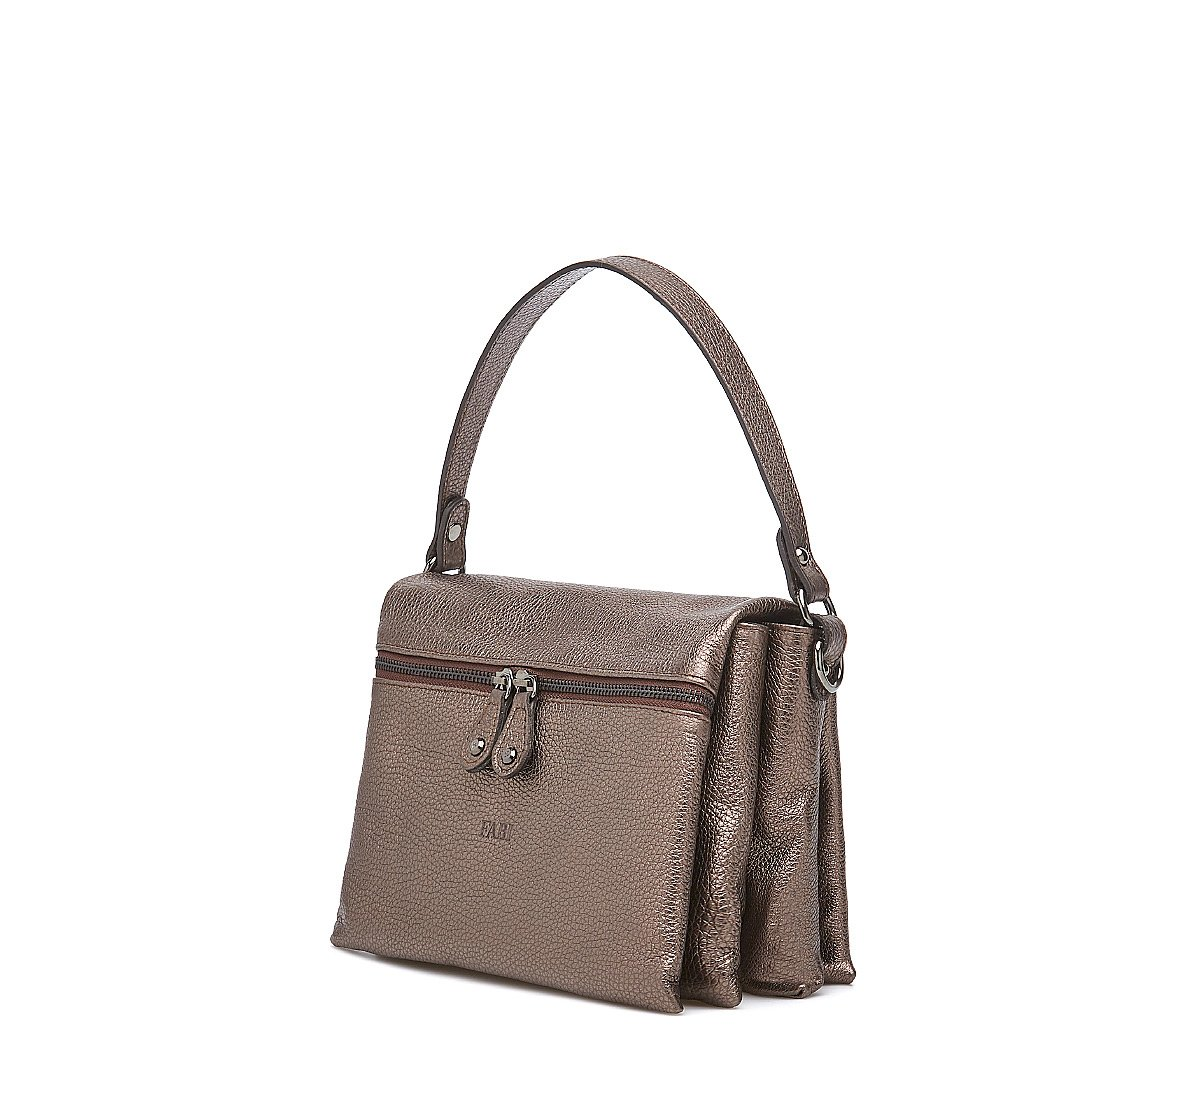 City bag in calf leather